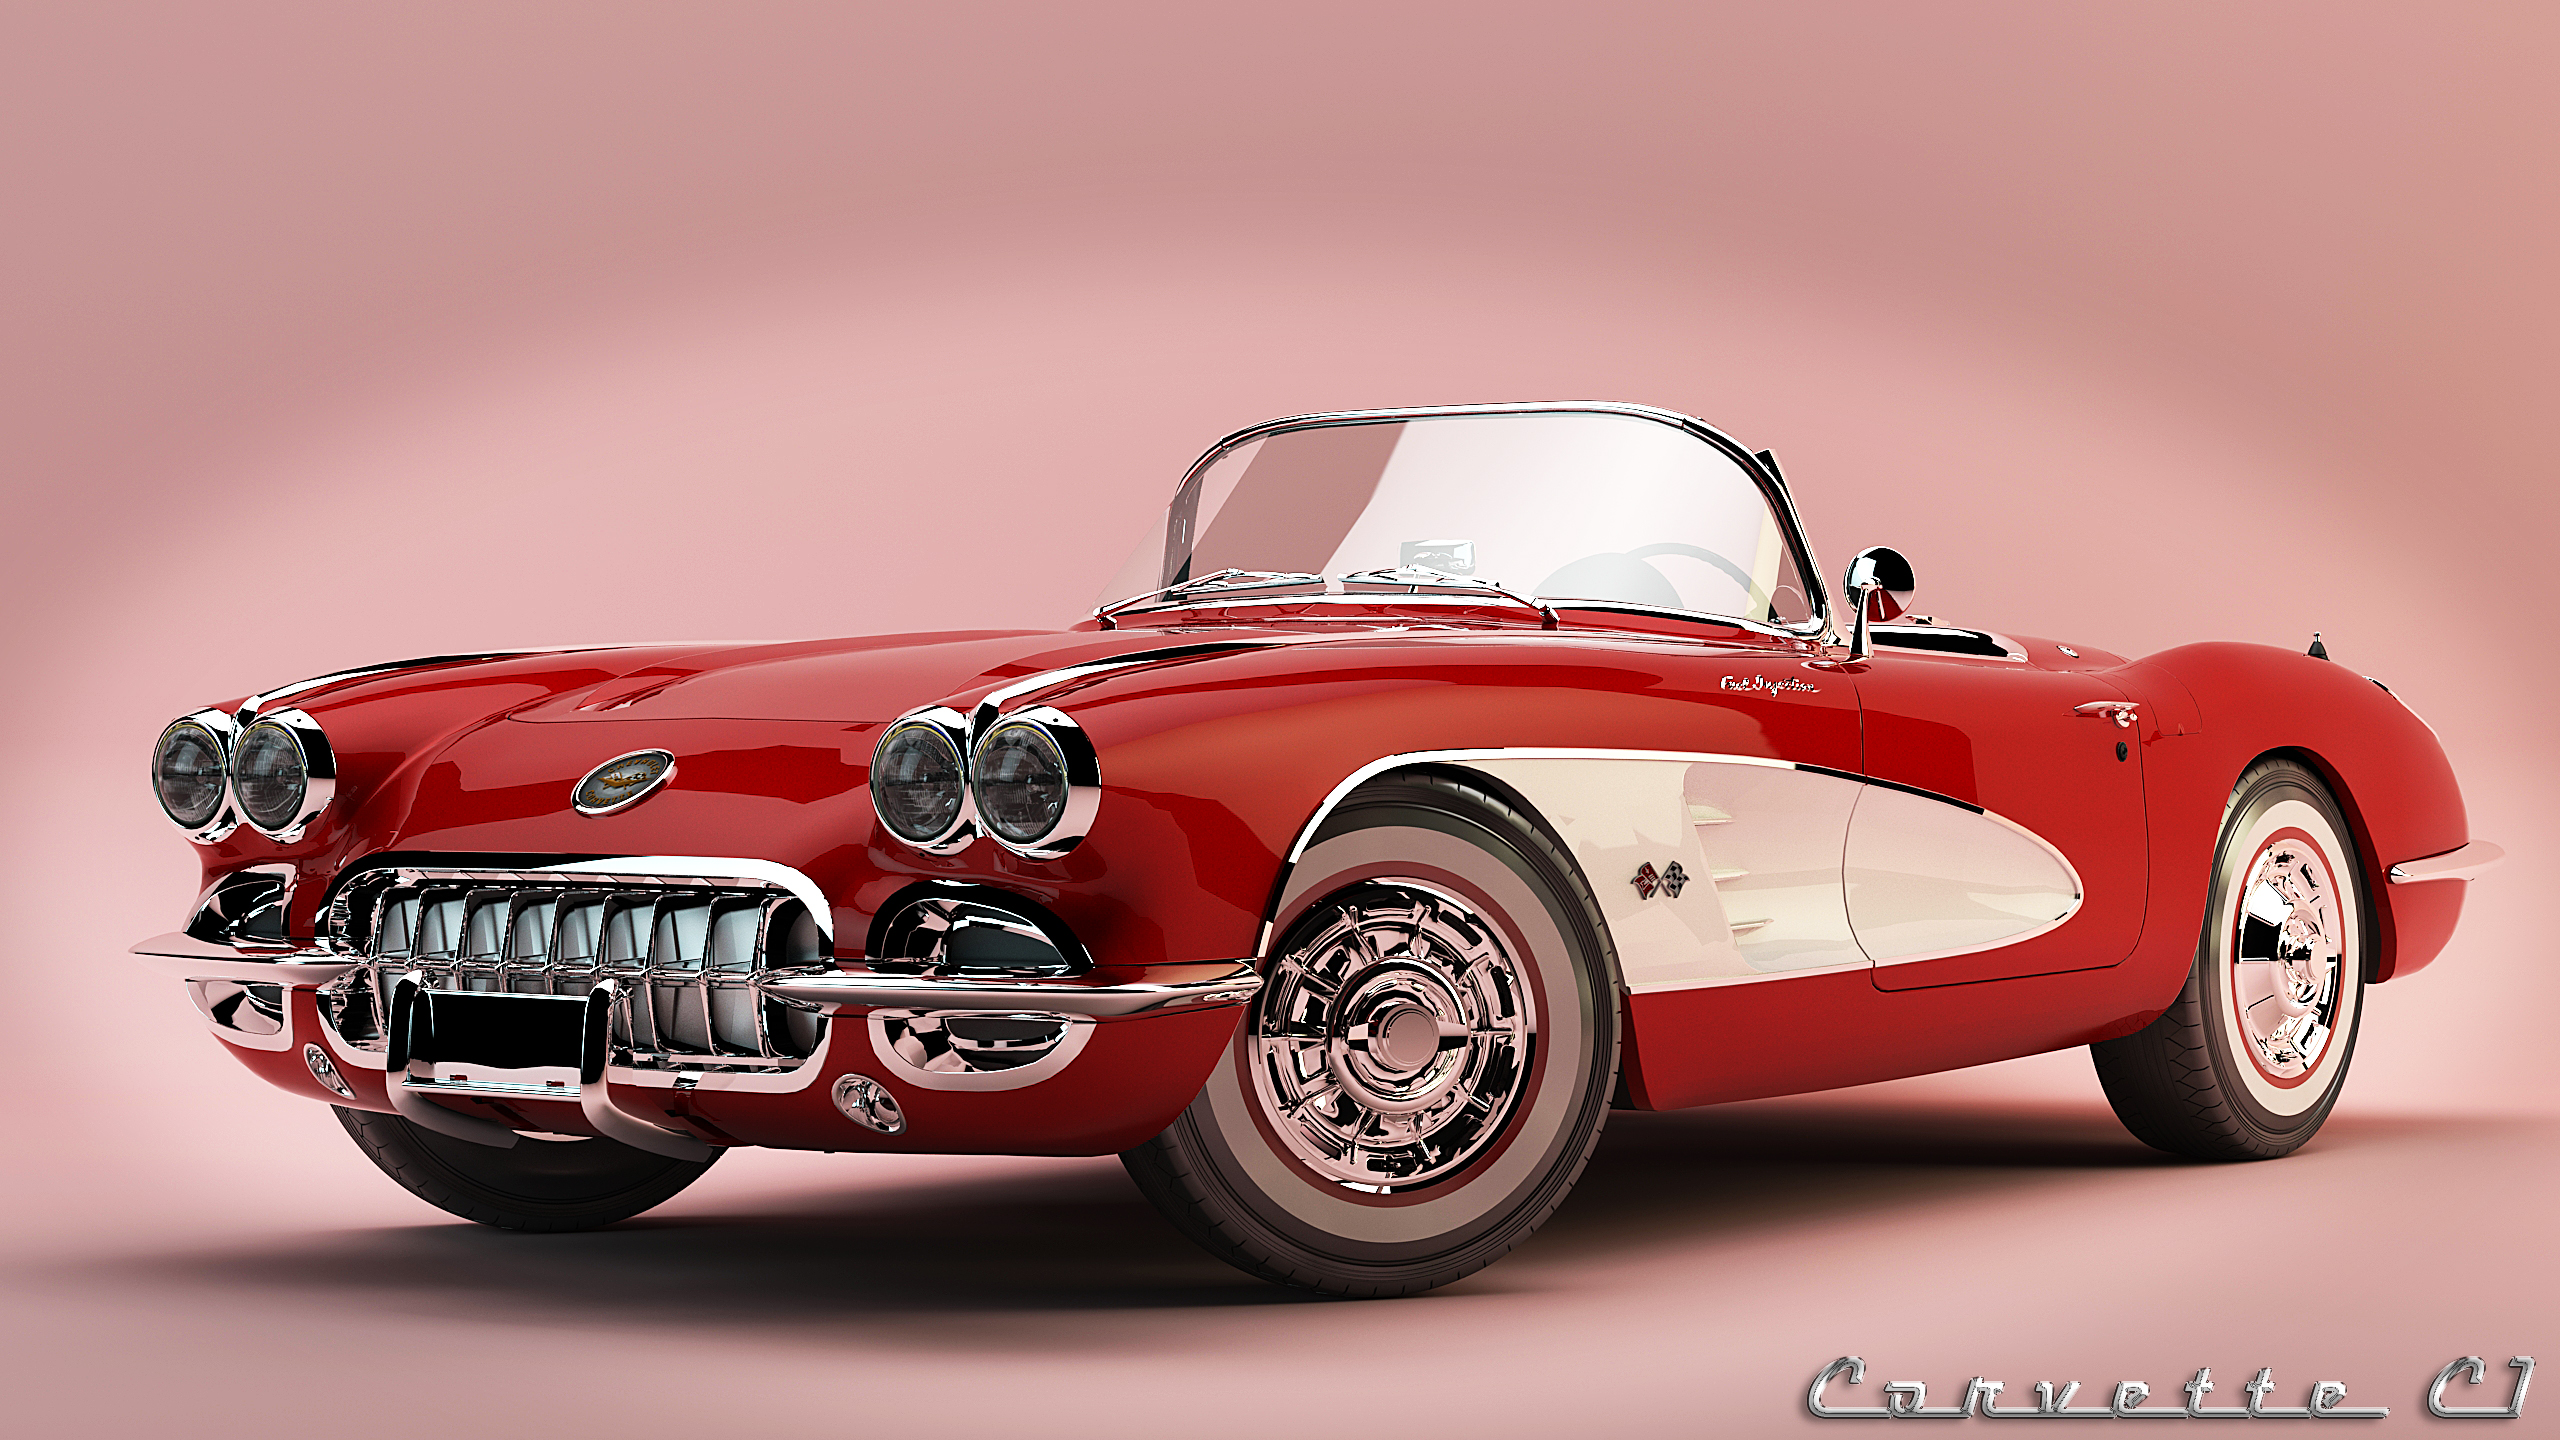 1960 Chevrolet Corvette C1 by nancorocks